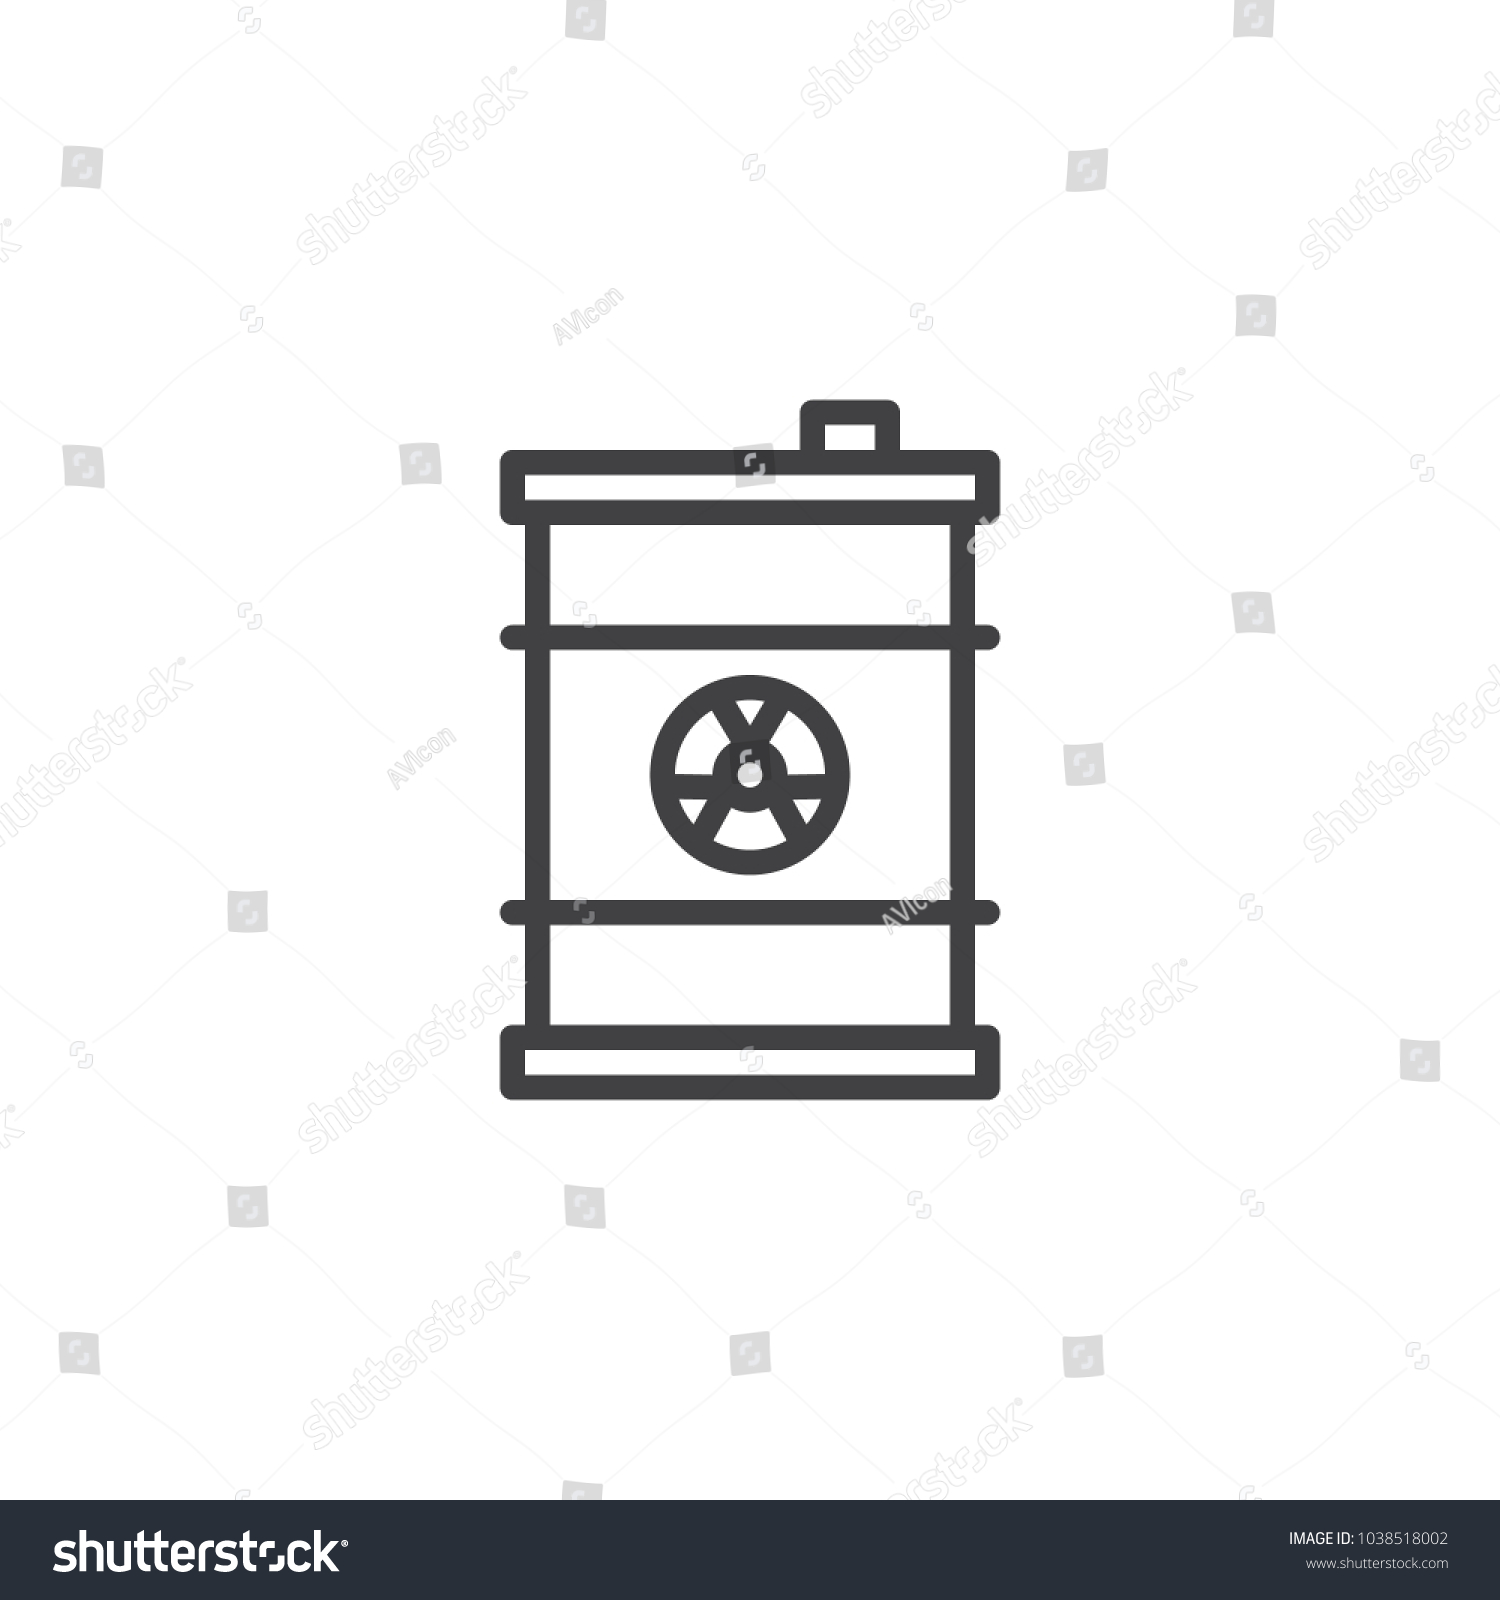 Toxic symbol black vector icon network equipment list critical stock vector 1038518002 stock vector waste barrel outline icon linear style sign for mobile concept and web design nuclear toxic 1038518002 waste barrel biocorpaavc Images